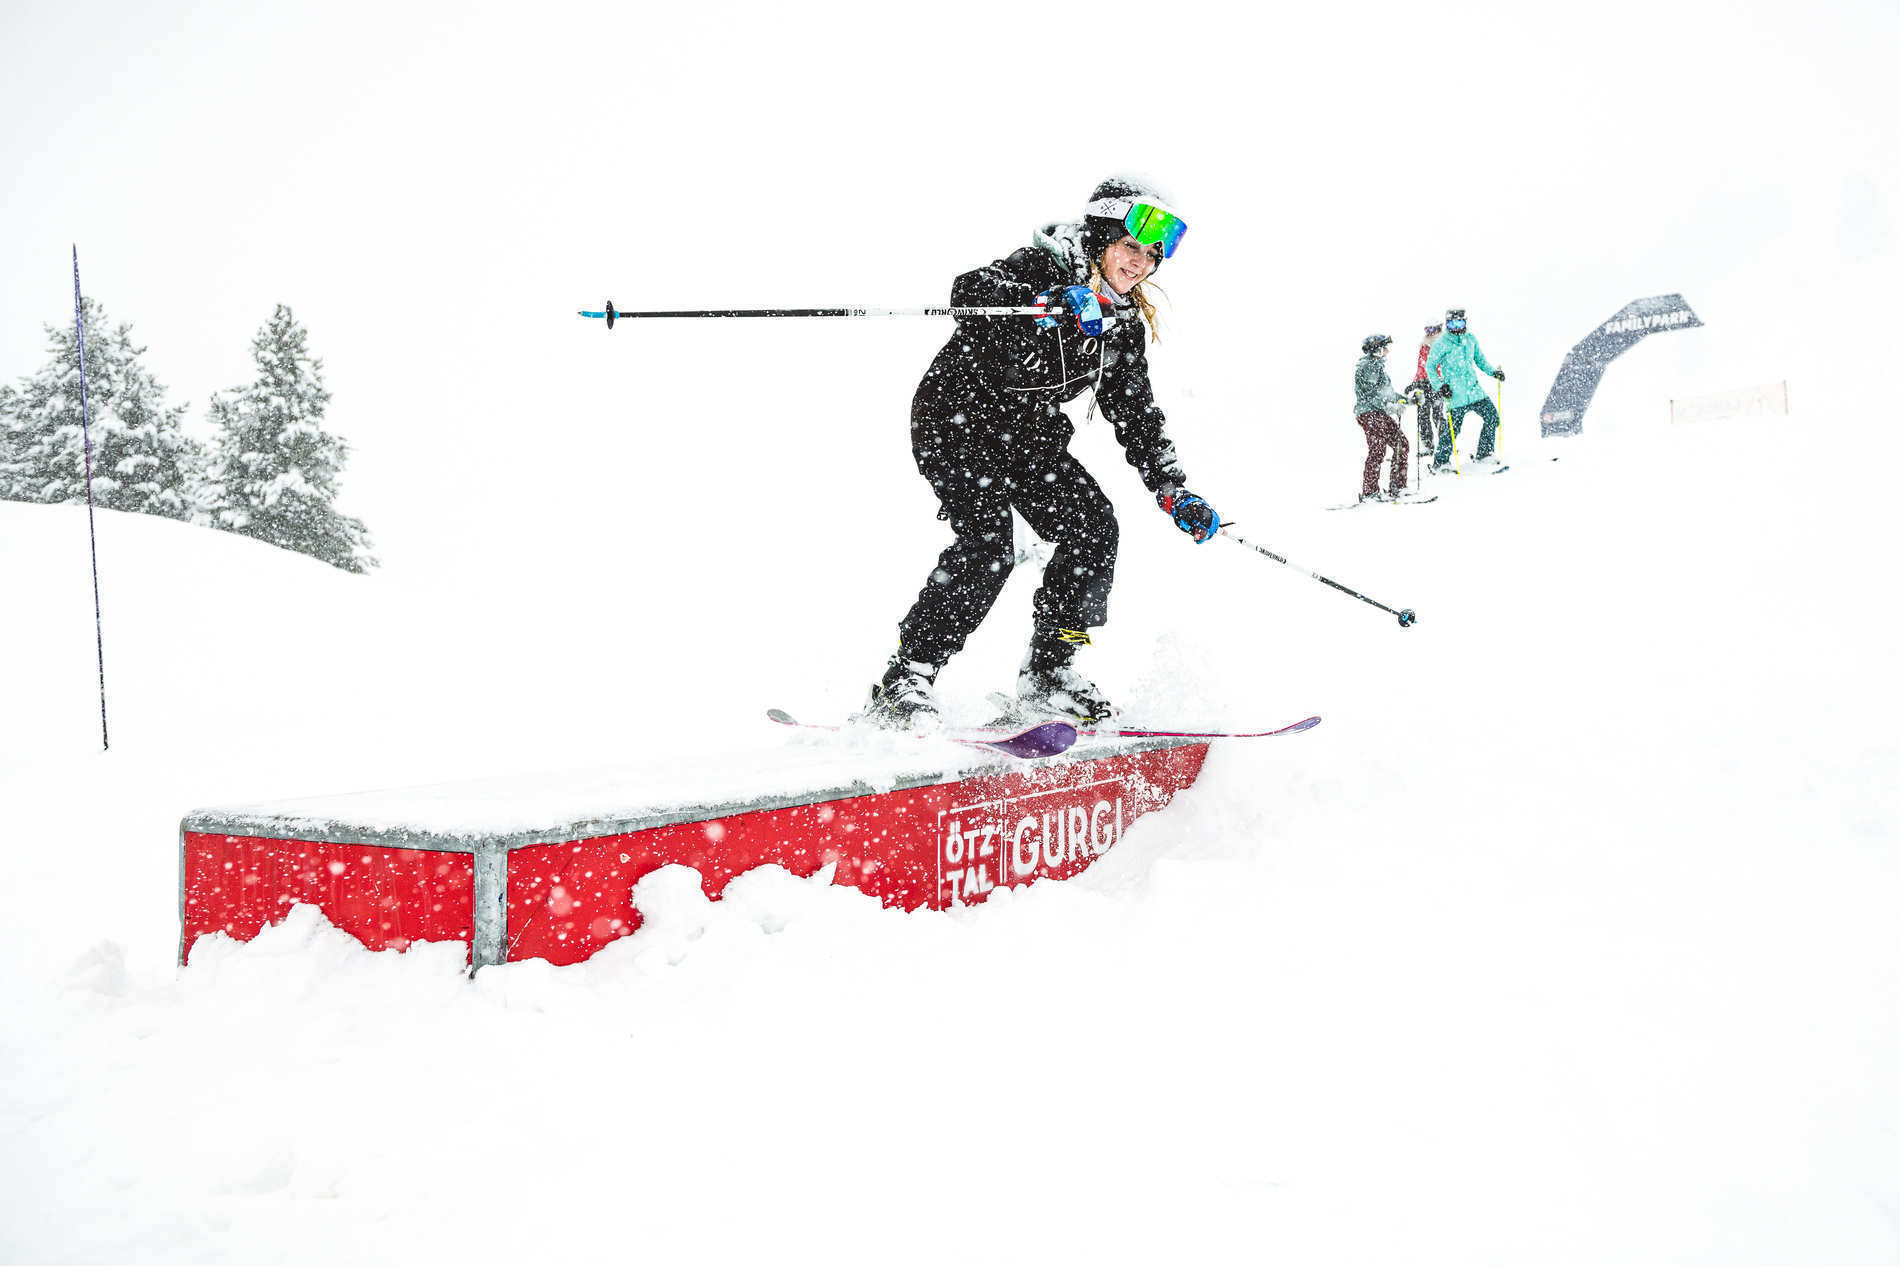 obergurgl 21 12 2019 action fs unknown rider christian riefenberg qparks 2